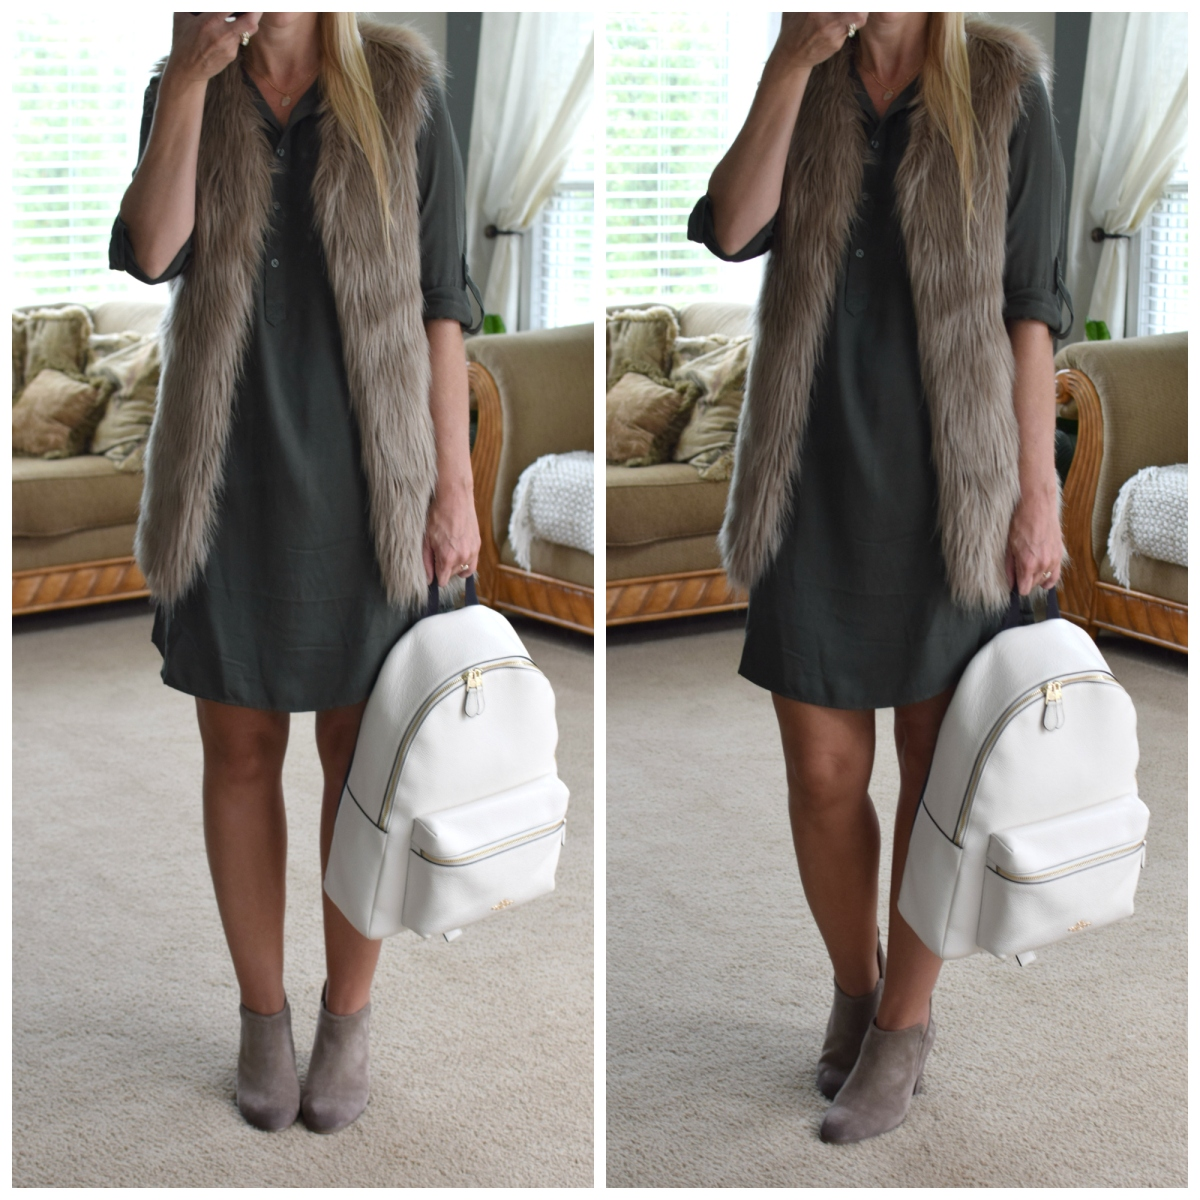 Utility dress paired with faux fur vest and booties for fall |www.pearlsandsportsbras.com|